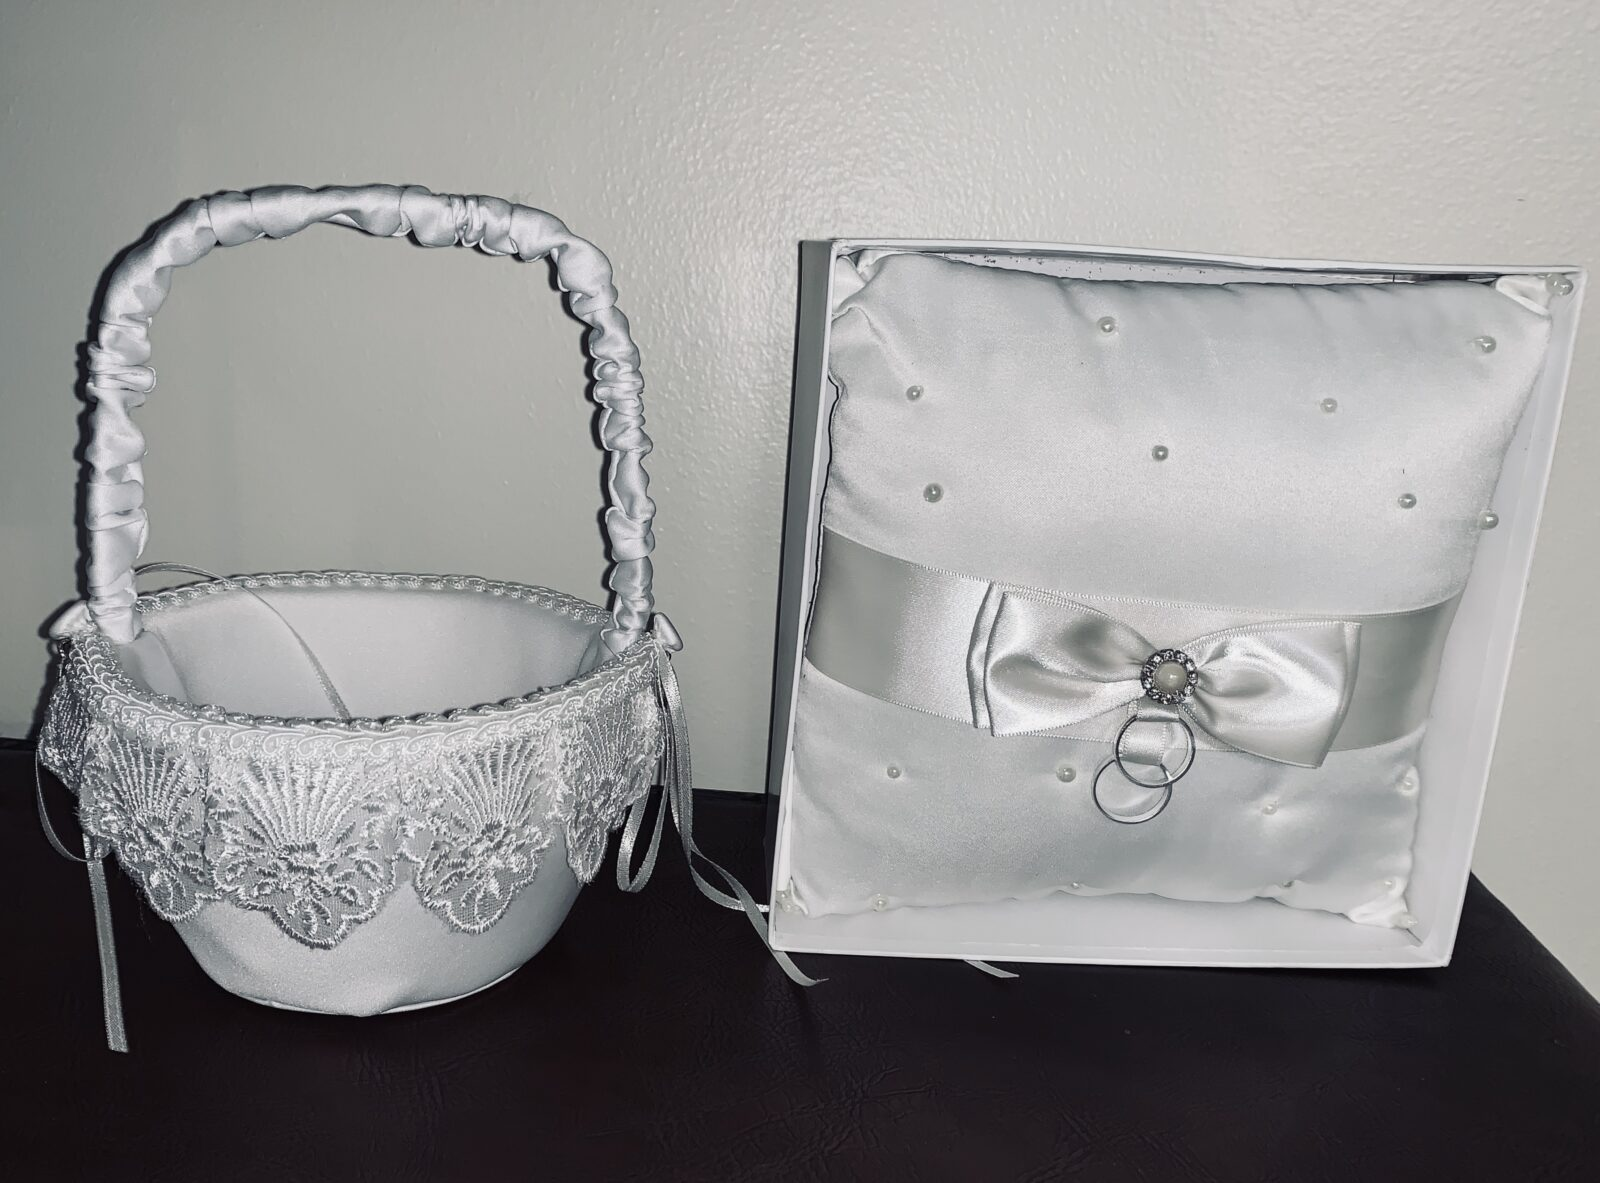 """Lace Flower Girl Basket - White, 8.25""""x5""""x5, Qty:1, $8 - Ring Bearer Pillow with Pearls - 7.5""""x7.5""""x2"""", Qty:1, $8"""